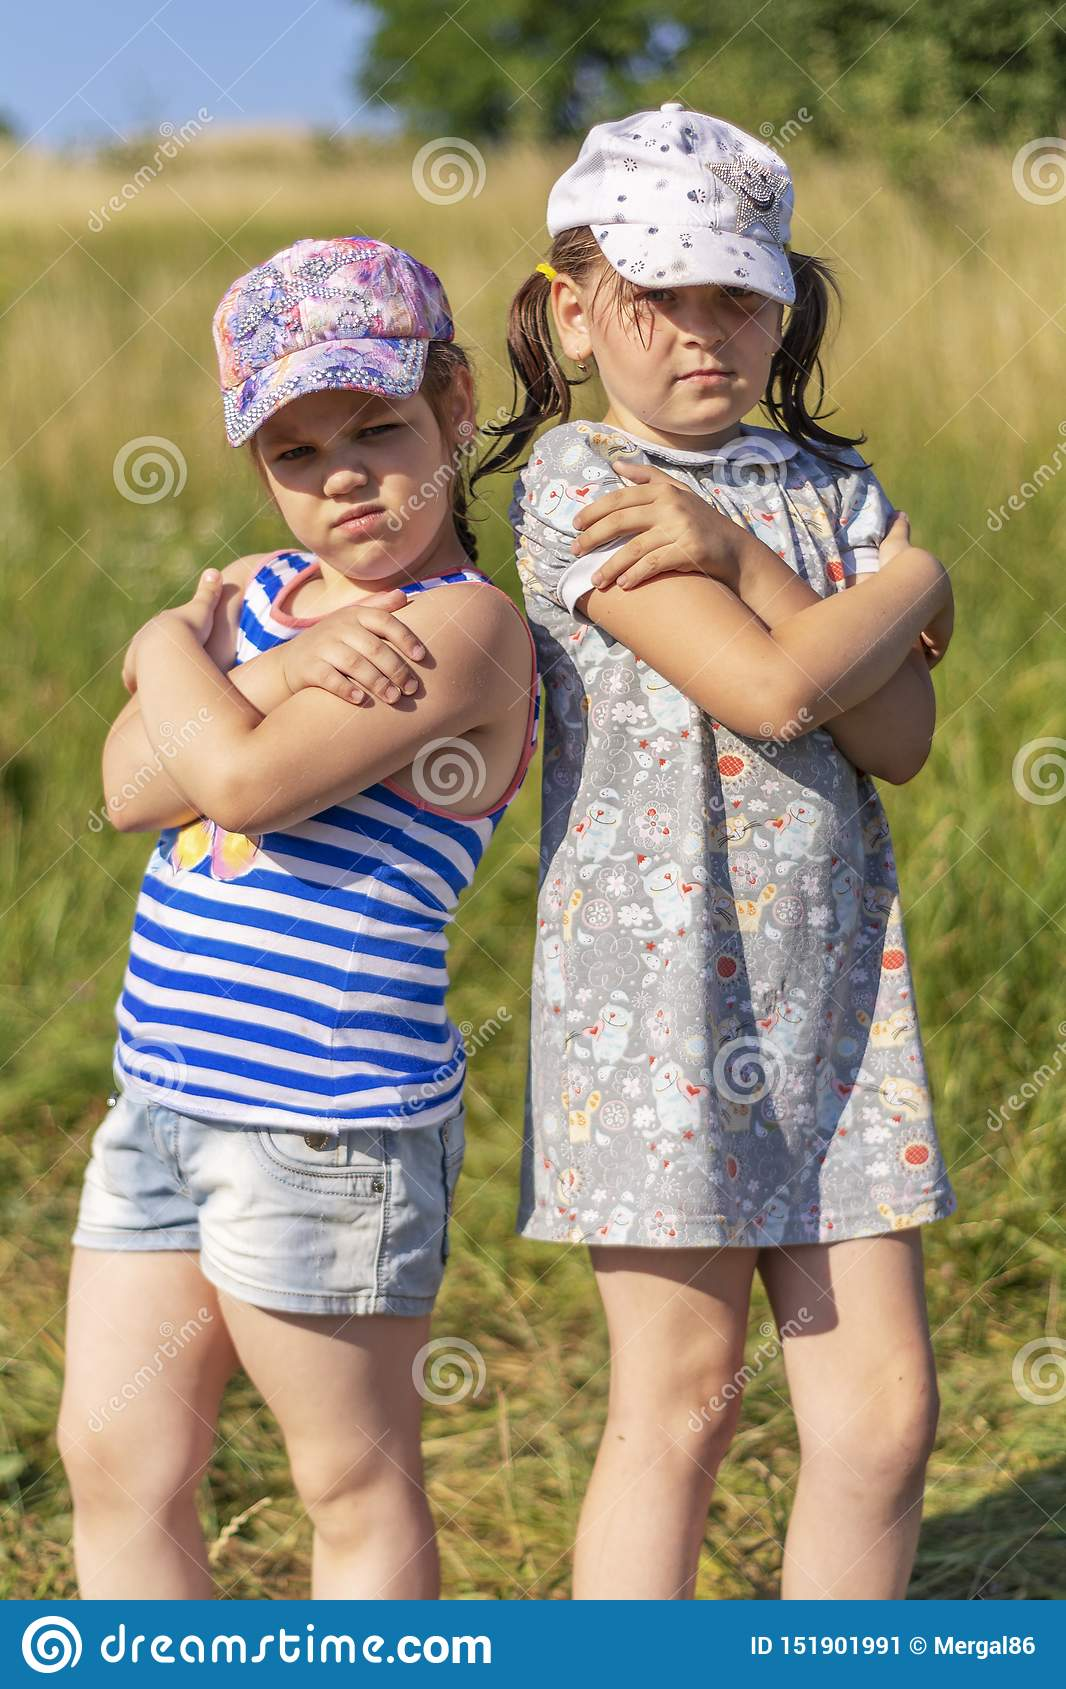 Hot Summer. Two little girl posing for the camera